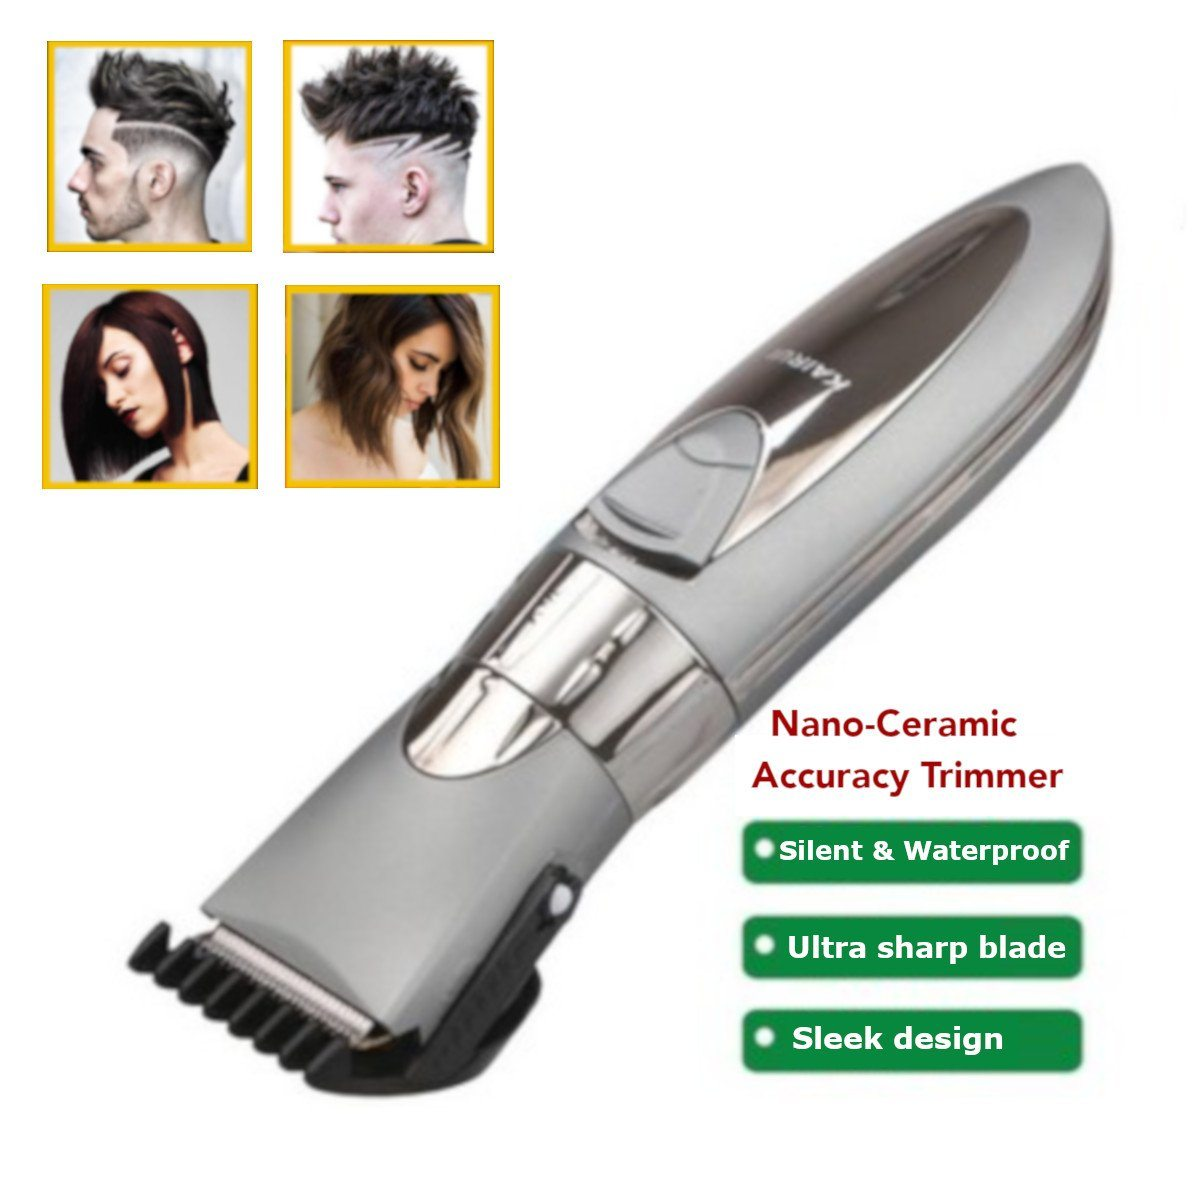 Nano-Ceramic Accuracy Trimmer